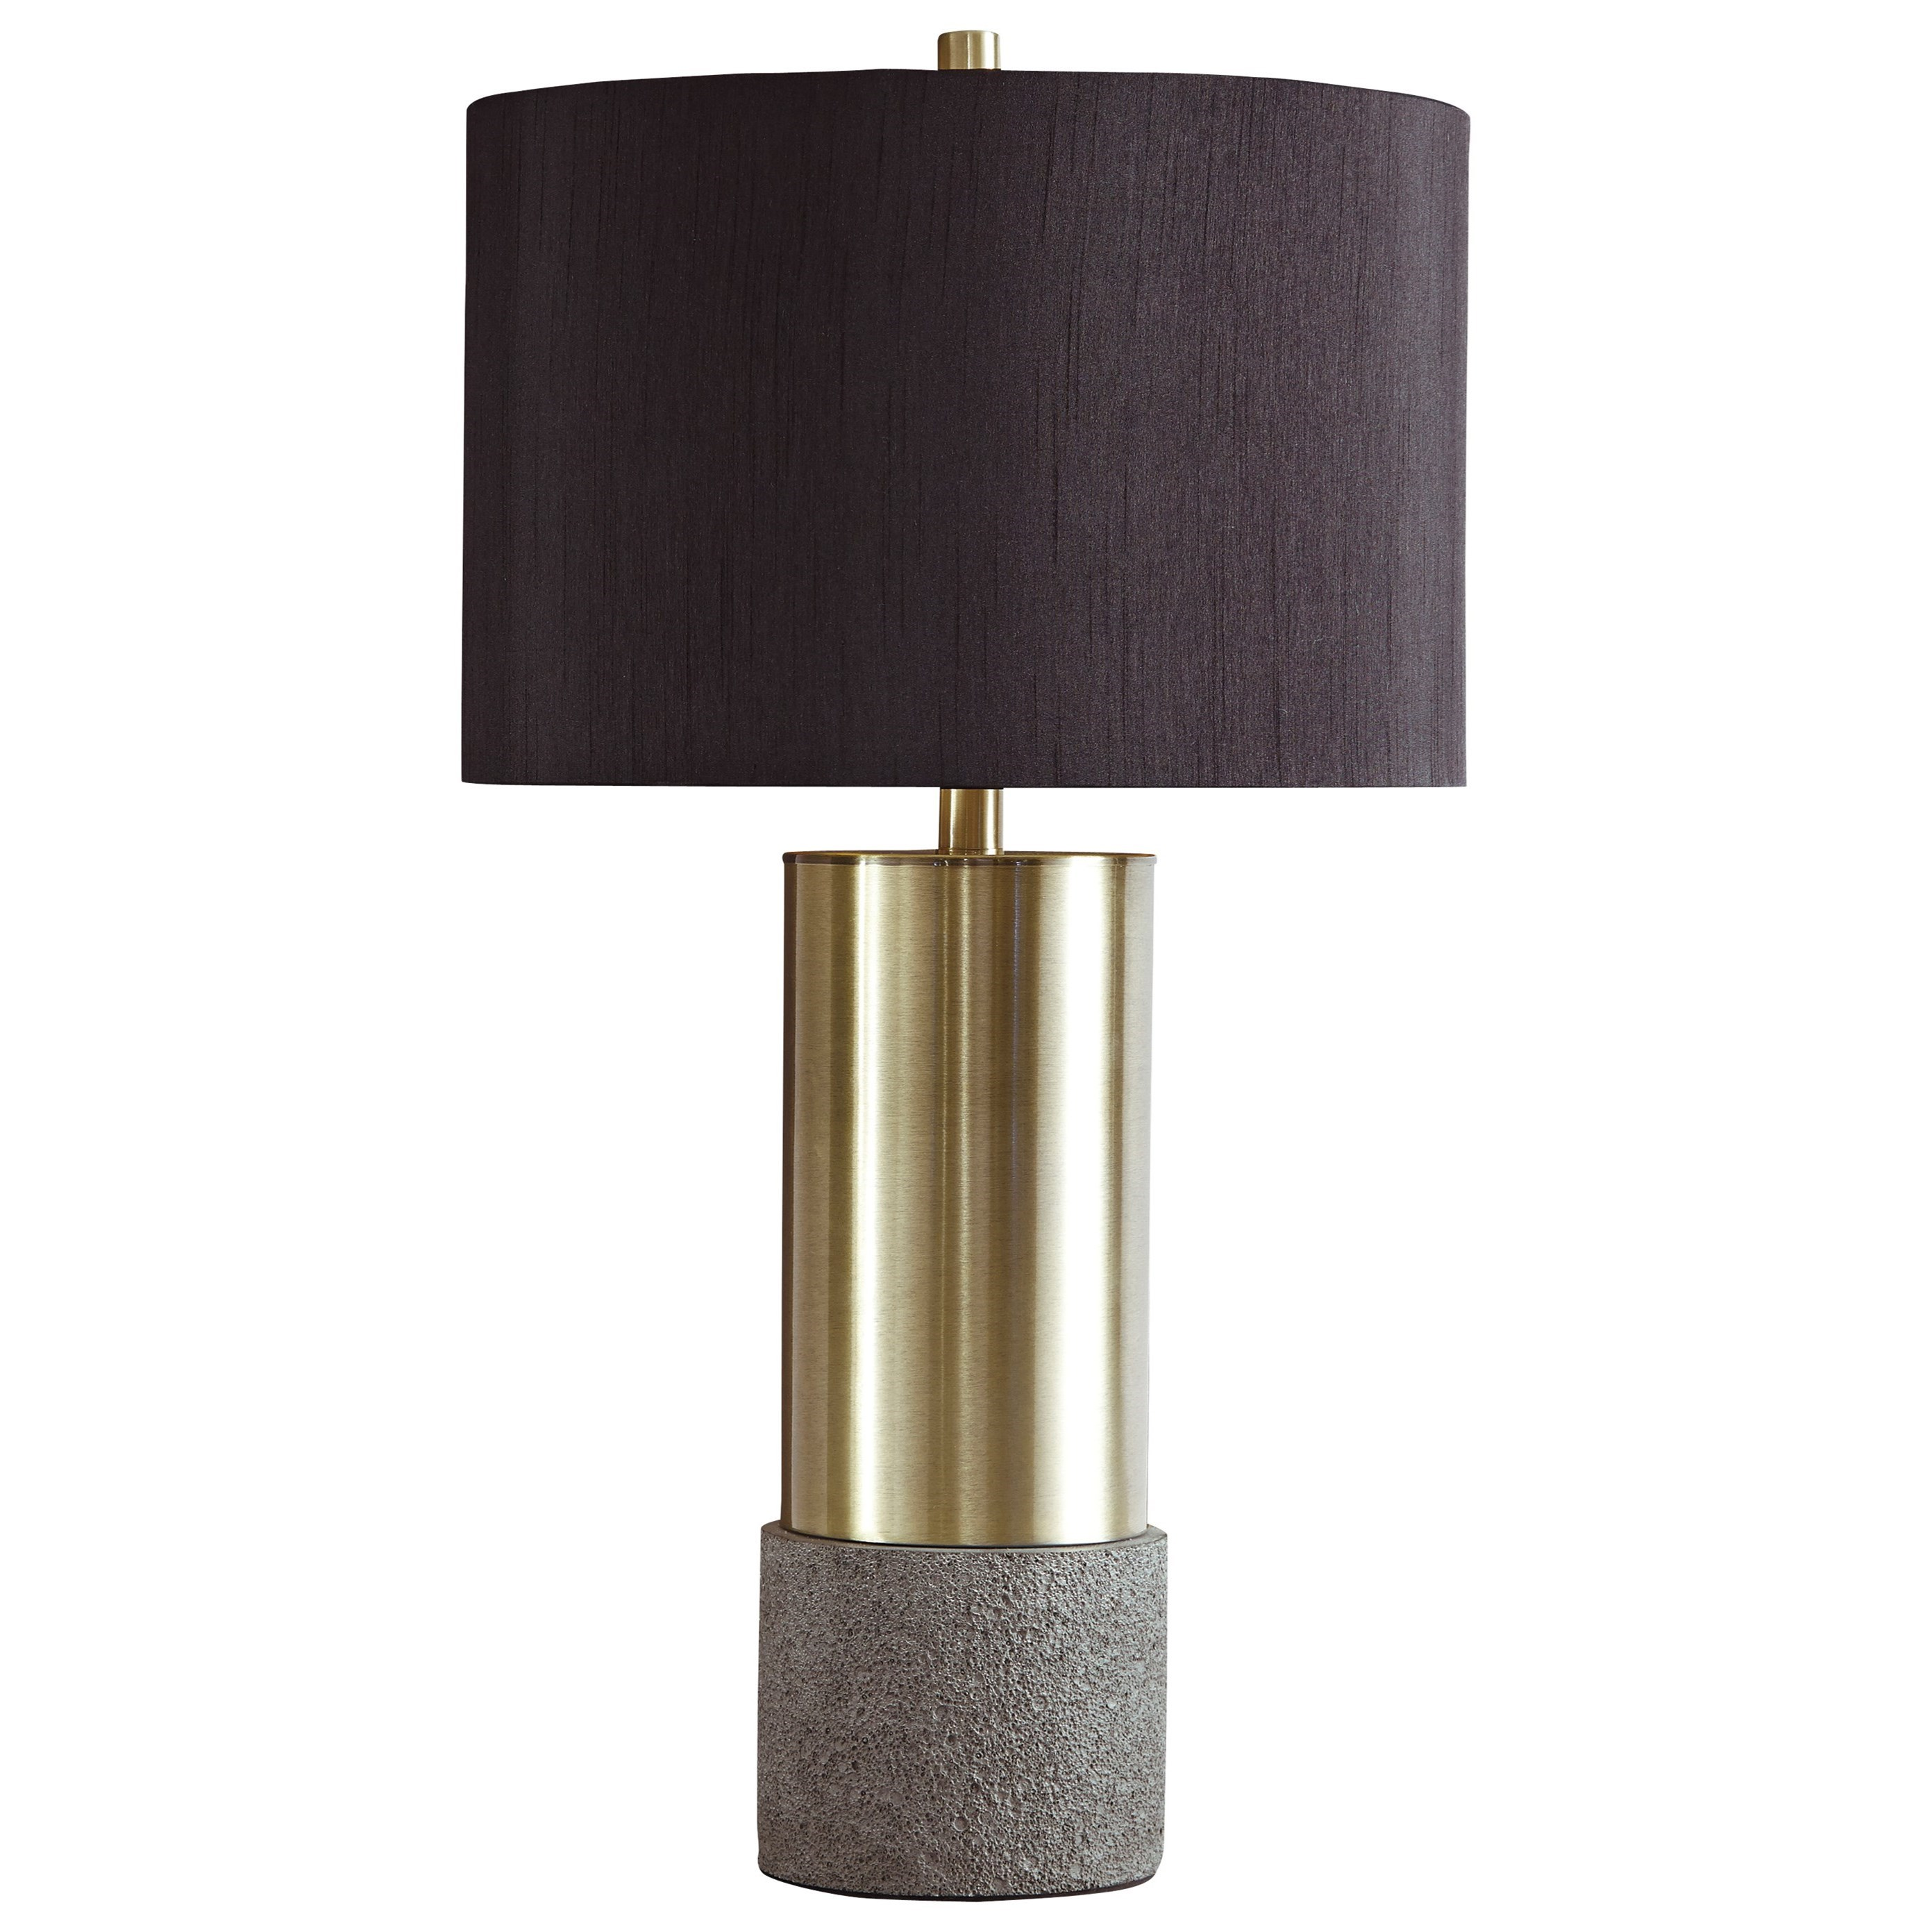 Lamps - Contemporary Set of 2 Jacek Metal Table Lamps by Signature Design by Ashley at Northeast Factory Direct